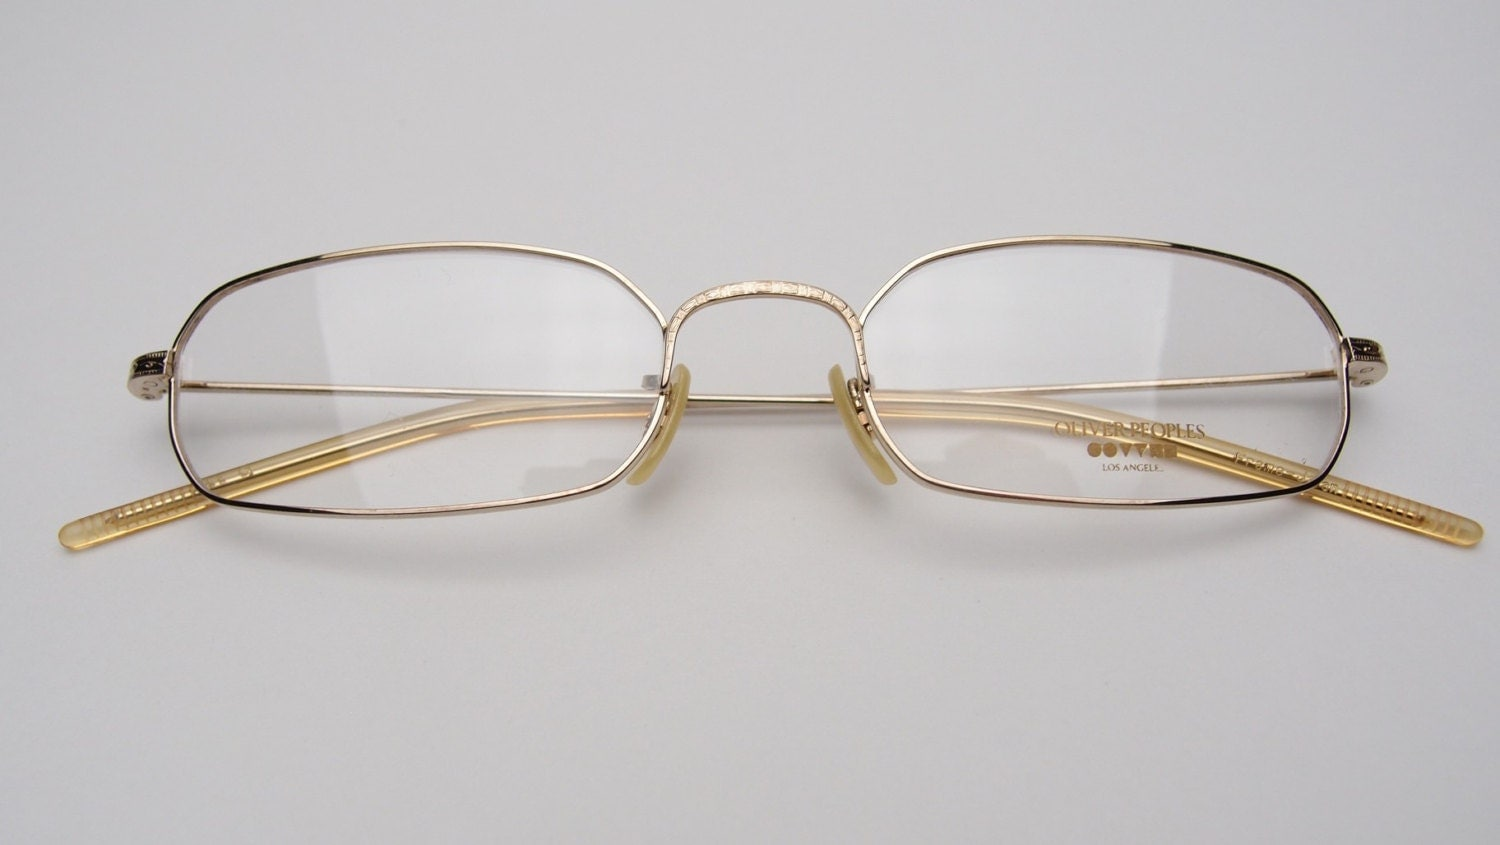 Eyeglass Frames Made In Japan : Vintage Oliver Peoples L.A. Sunglasses Eyeglasses Frames ...